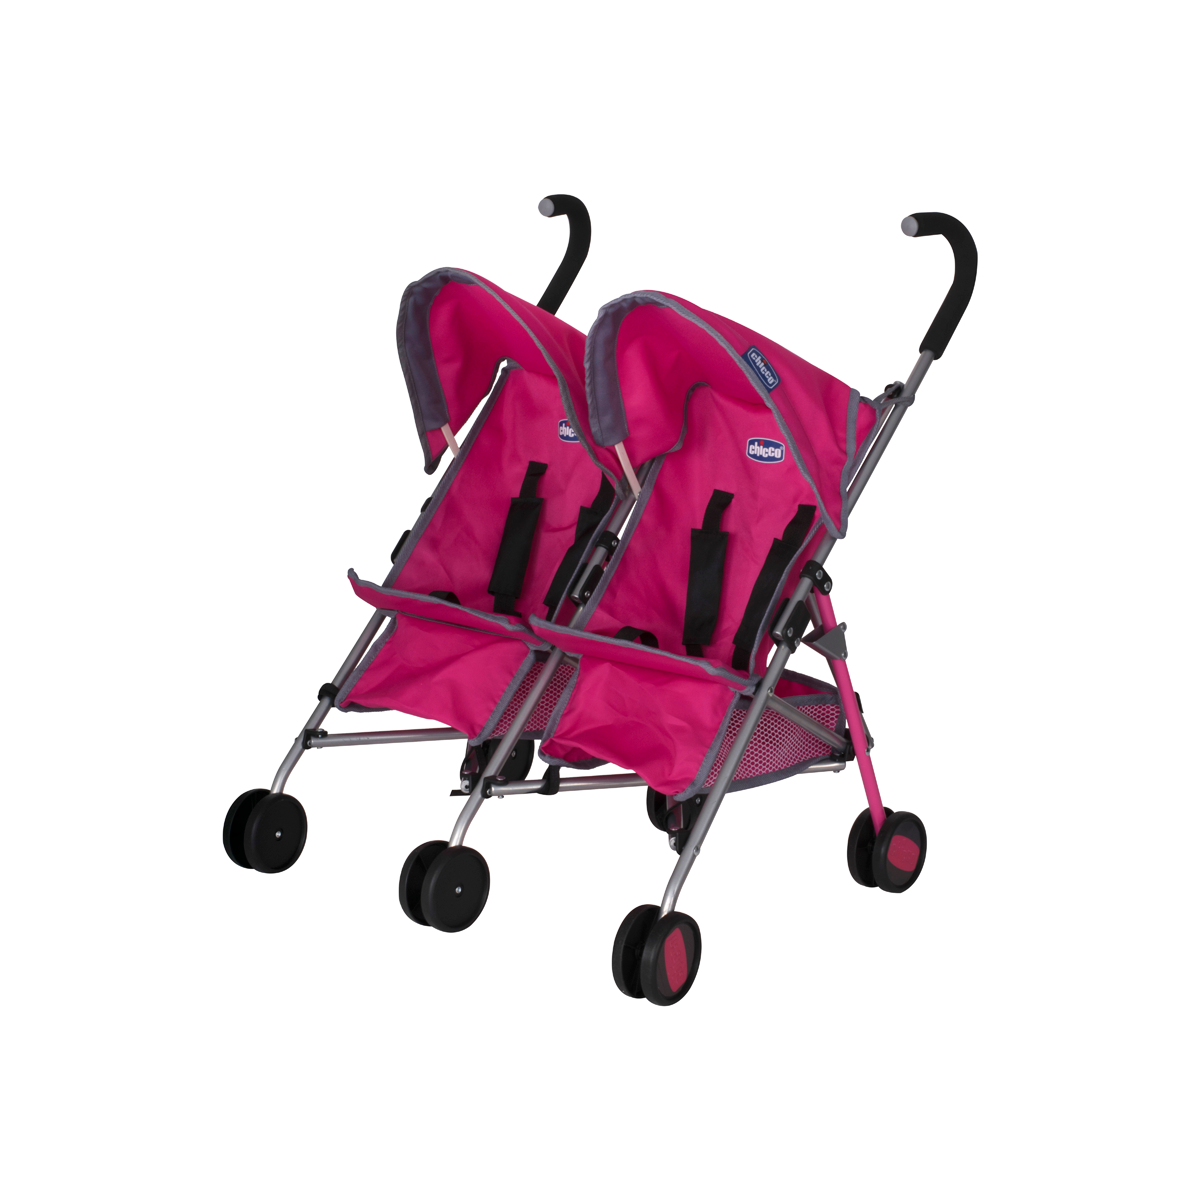 Chicco Echo Twin Stroller from Early Learning Center